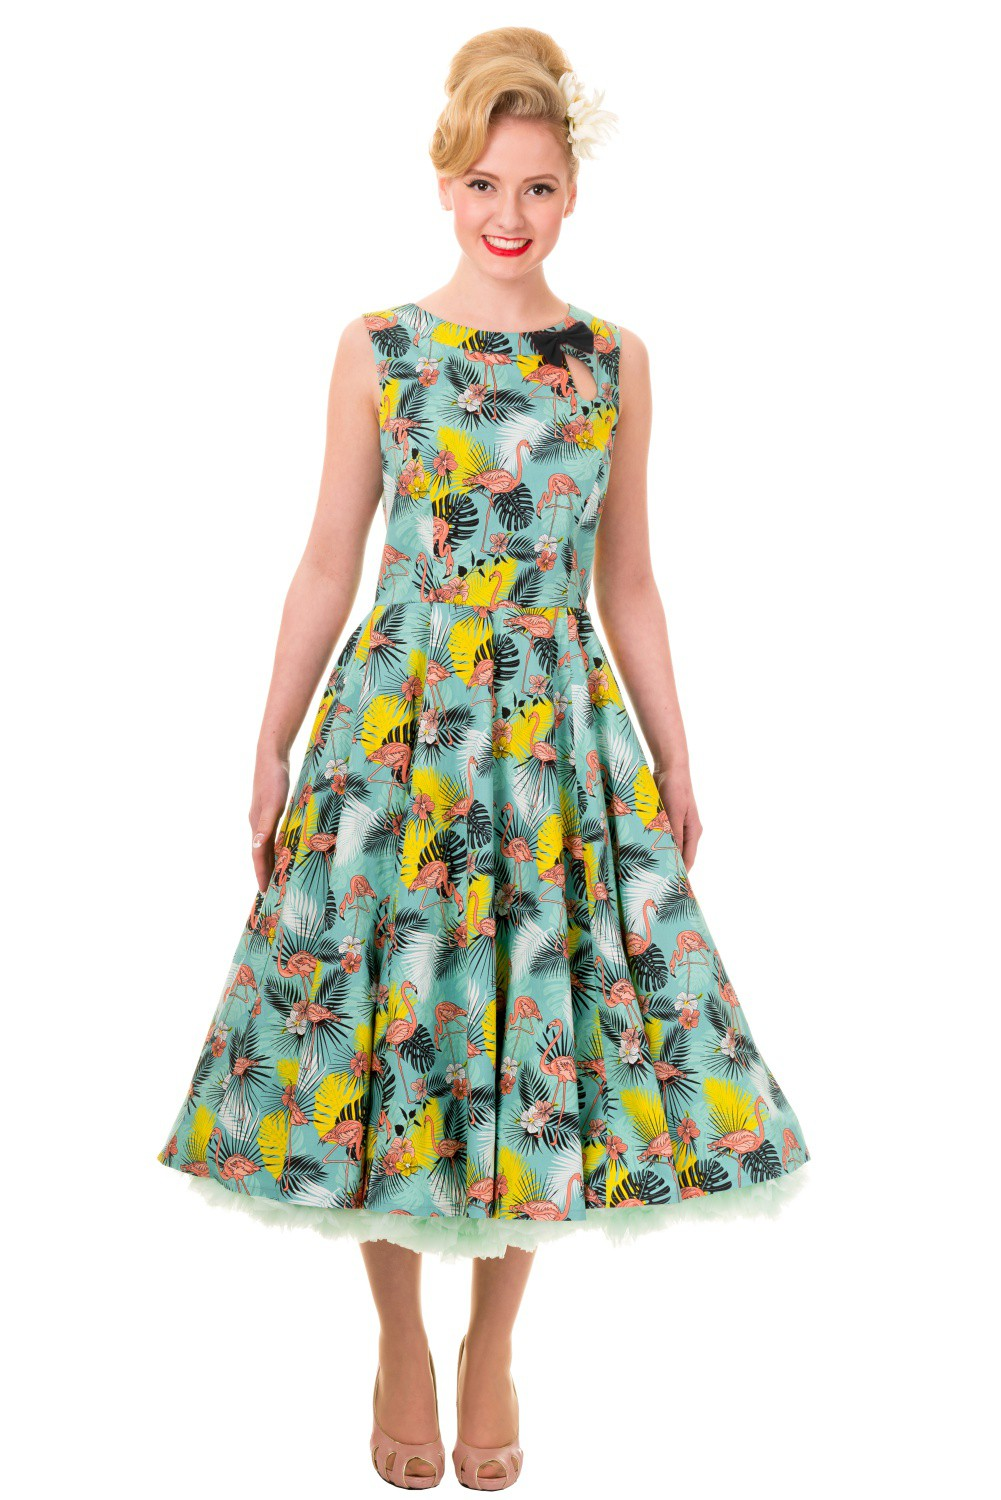 Banned Wonderlust Tropical Flamingo Rockabilly Dress